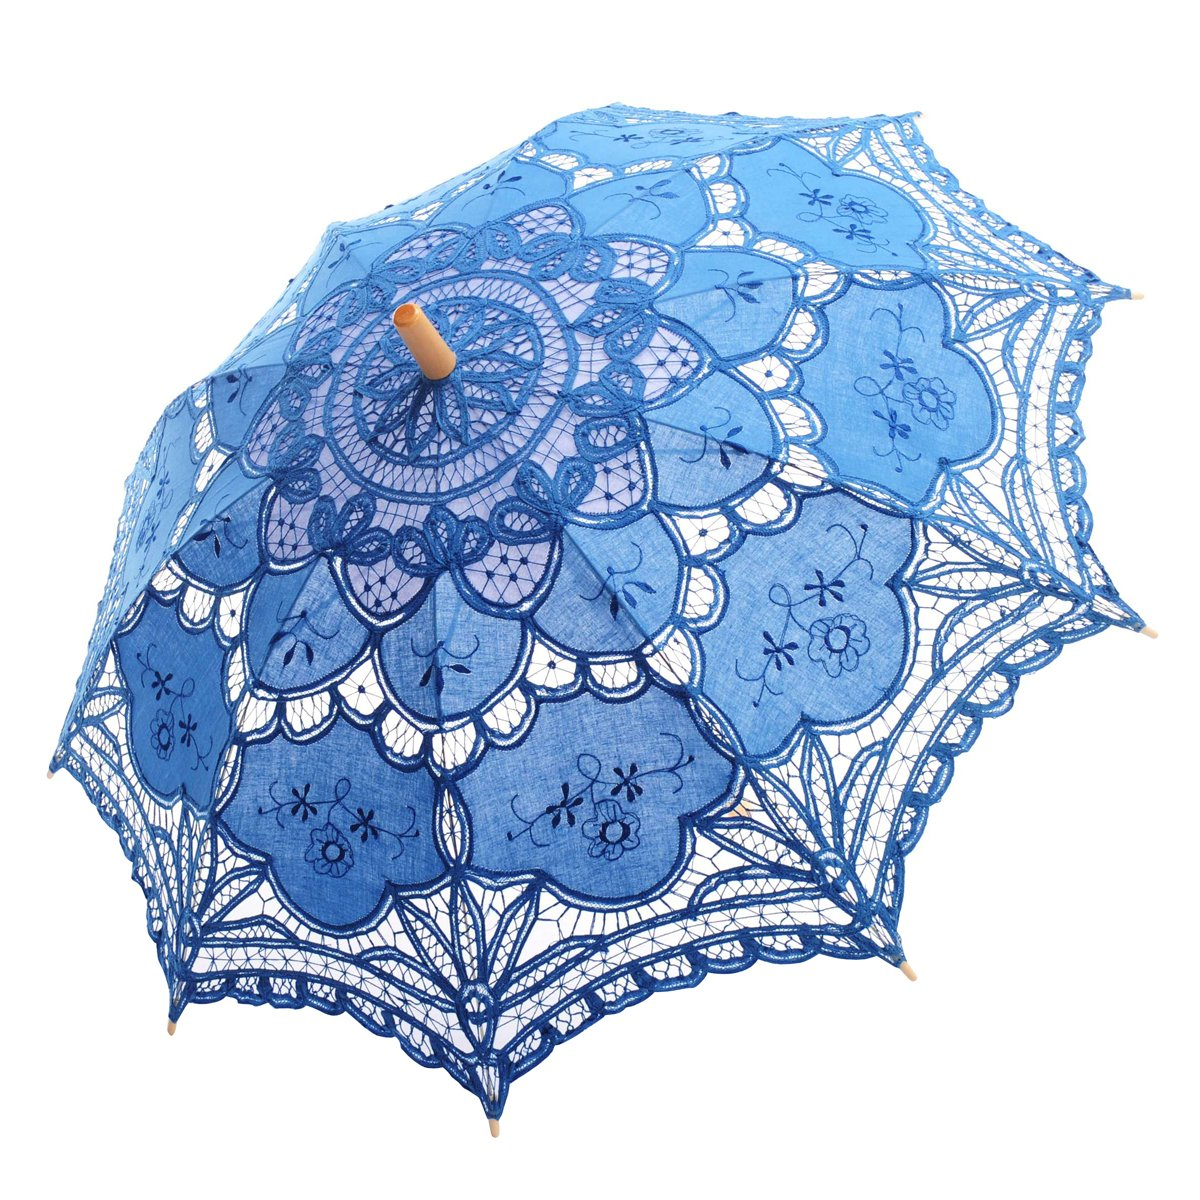 Topwedding Handmade Battenburg Lace Embroidered Wedding Umbrella Parasol, Blue